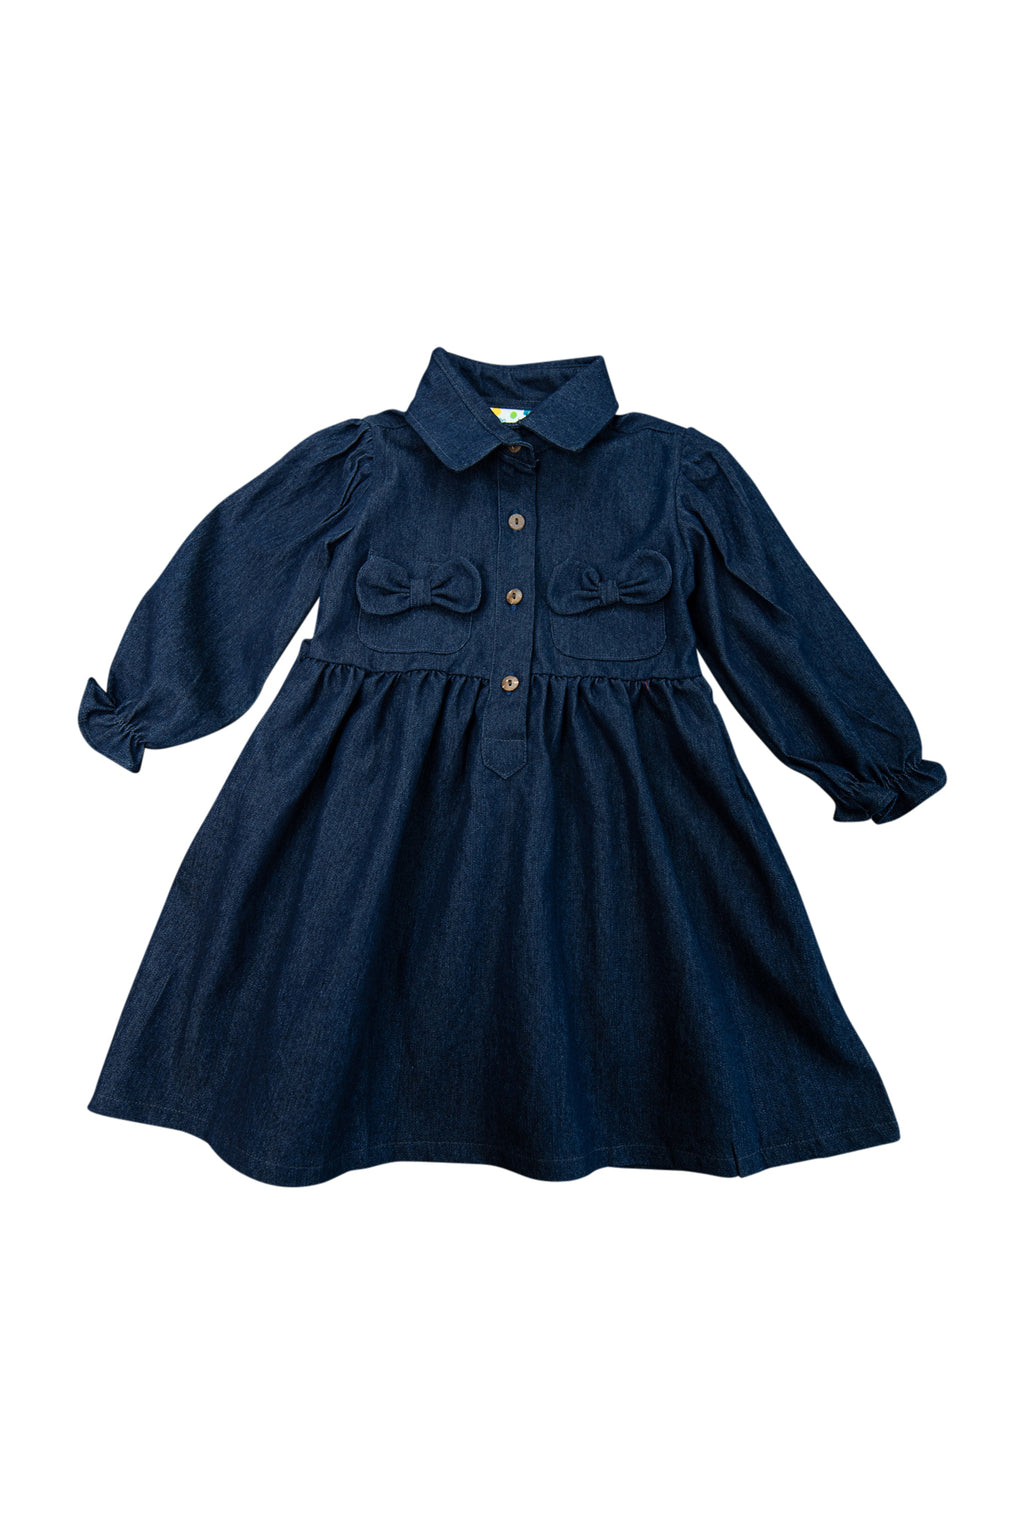 Girls Collared Denim Shirt Dress